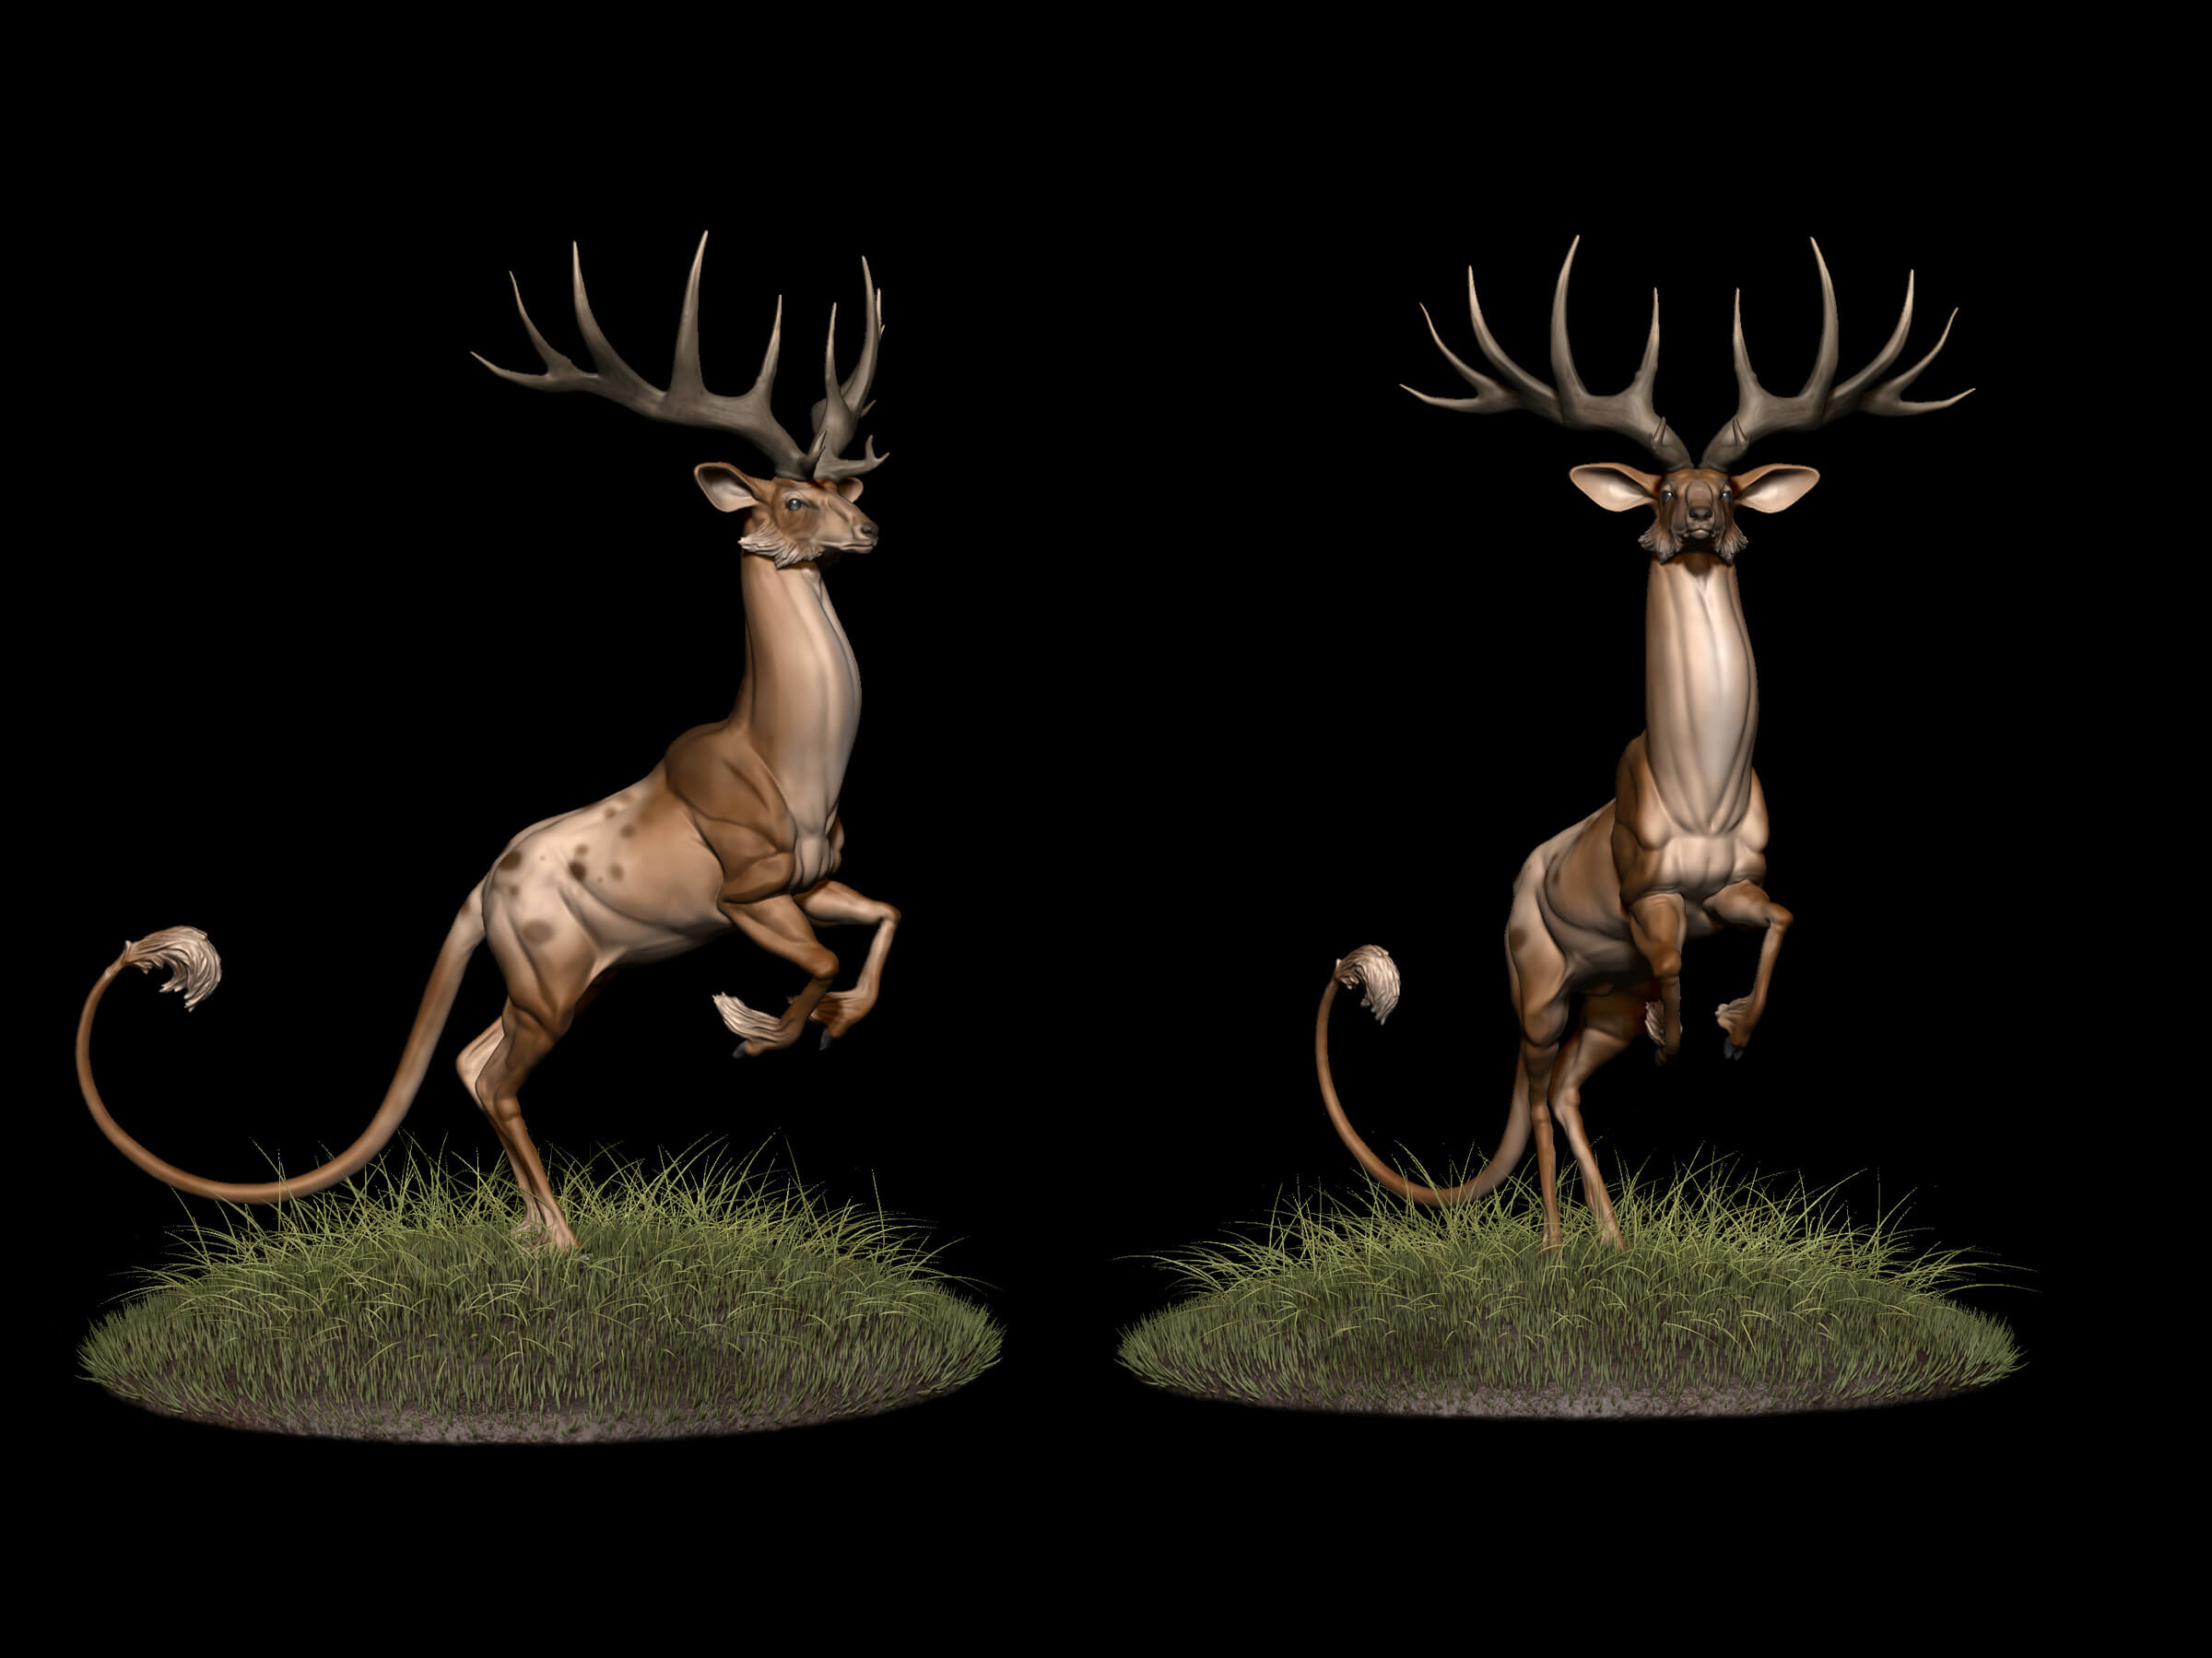 computer-generated 3d model of a deer-like creature on its hind legs